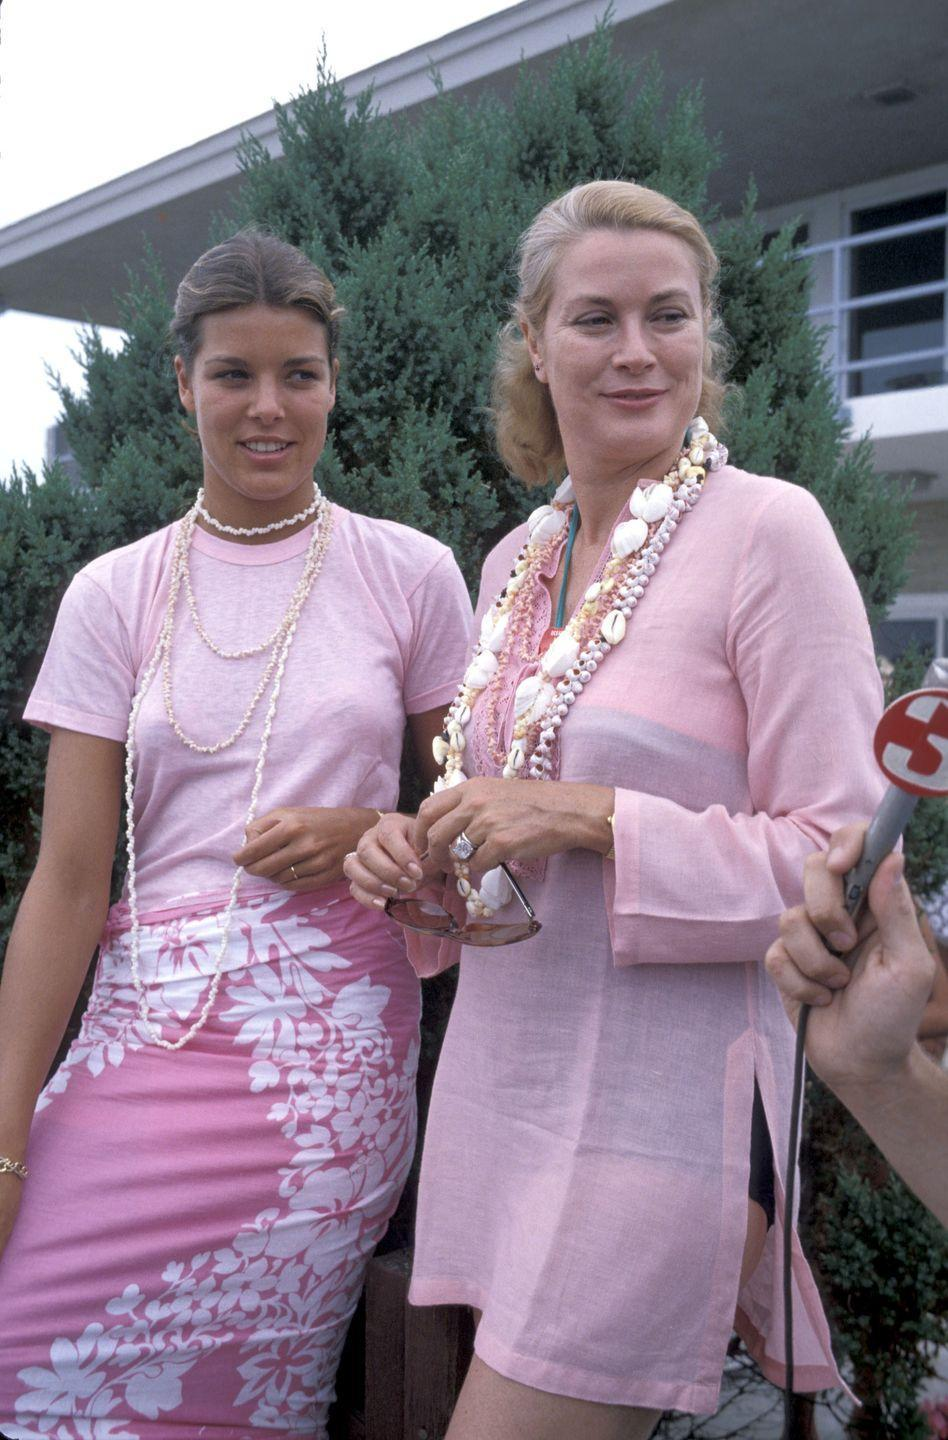 """<p>In 1978, the 21-year-old princess accompanied her mother to the Ocean City, the coastal New Jersey town where <a href=""""https://www.townandcountrymag.com/society/a8397/grace-kelly-family-philadelphia/"""" rel=""""nofollow noopener"""" target=""""_blank"""" data-ylk=""""slk:Grace Kelly spent her summers"""" class=""""link rapid-noclick-resp"""">Grace Kelly spent her summers</a> growing up.</p>"""